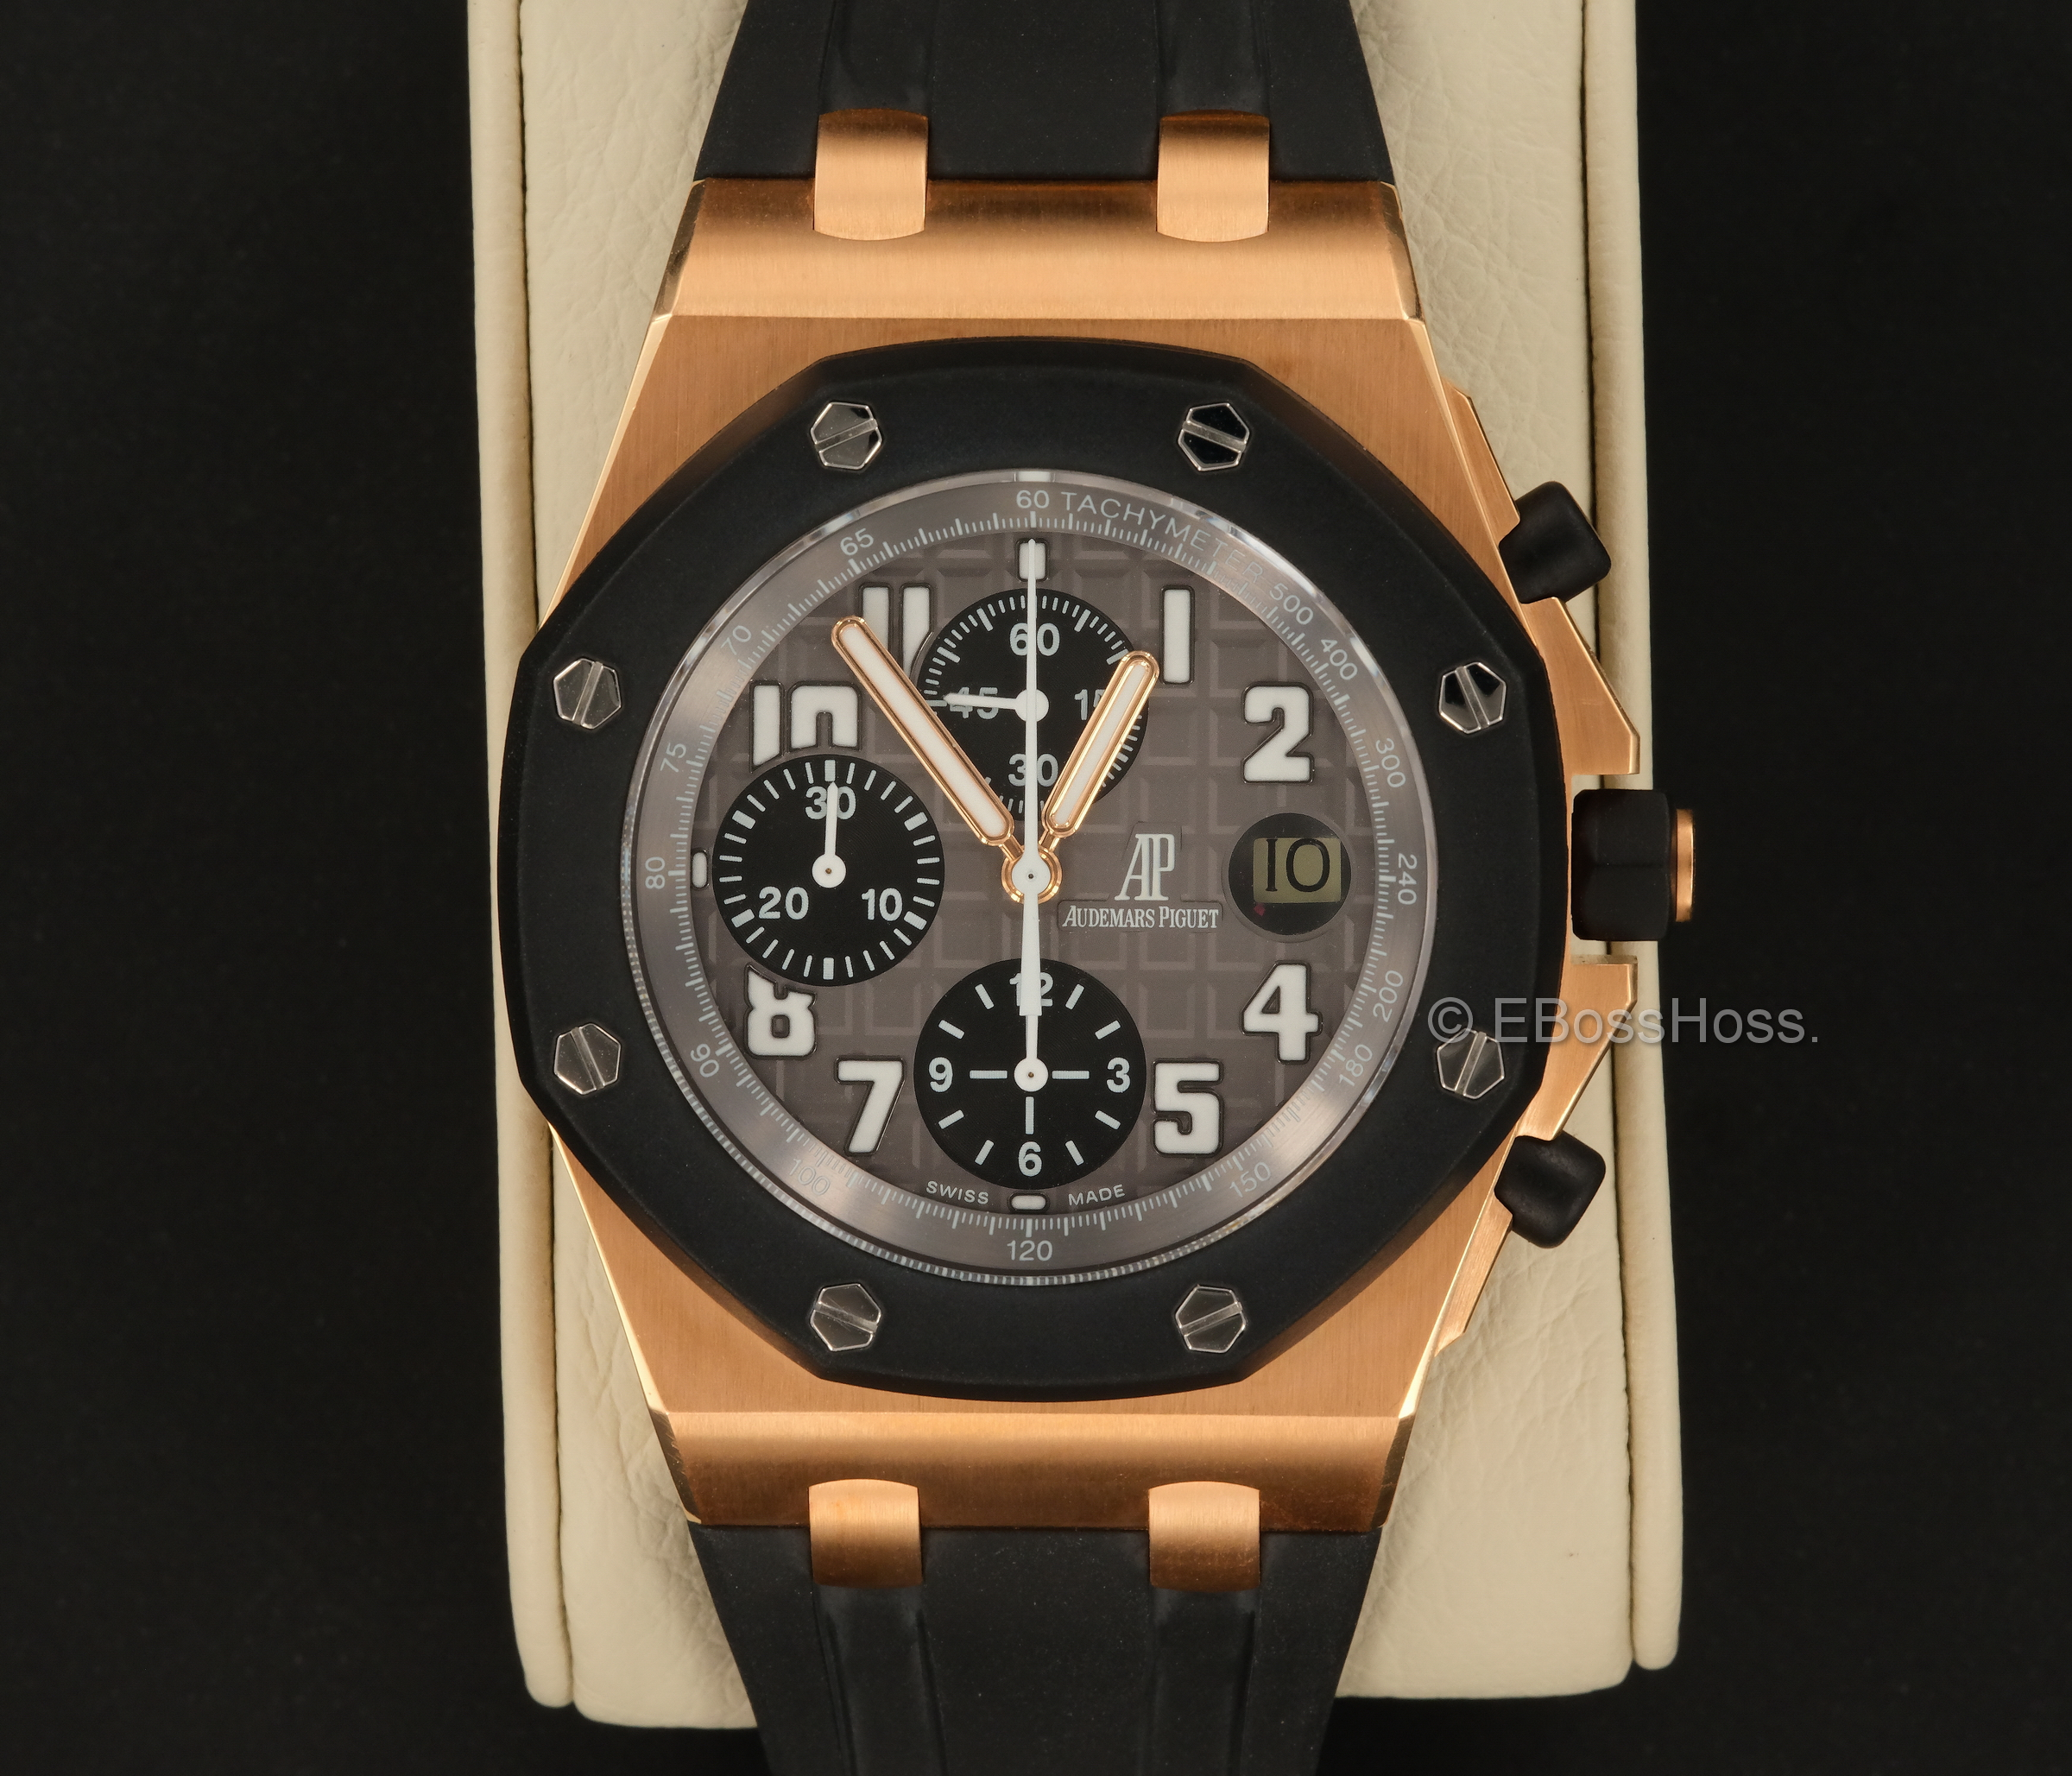 Audemars Piguet Royal Oak Offshore ROO Rubber-clad (Rose Gold)